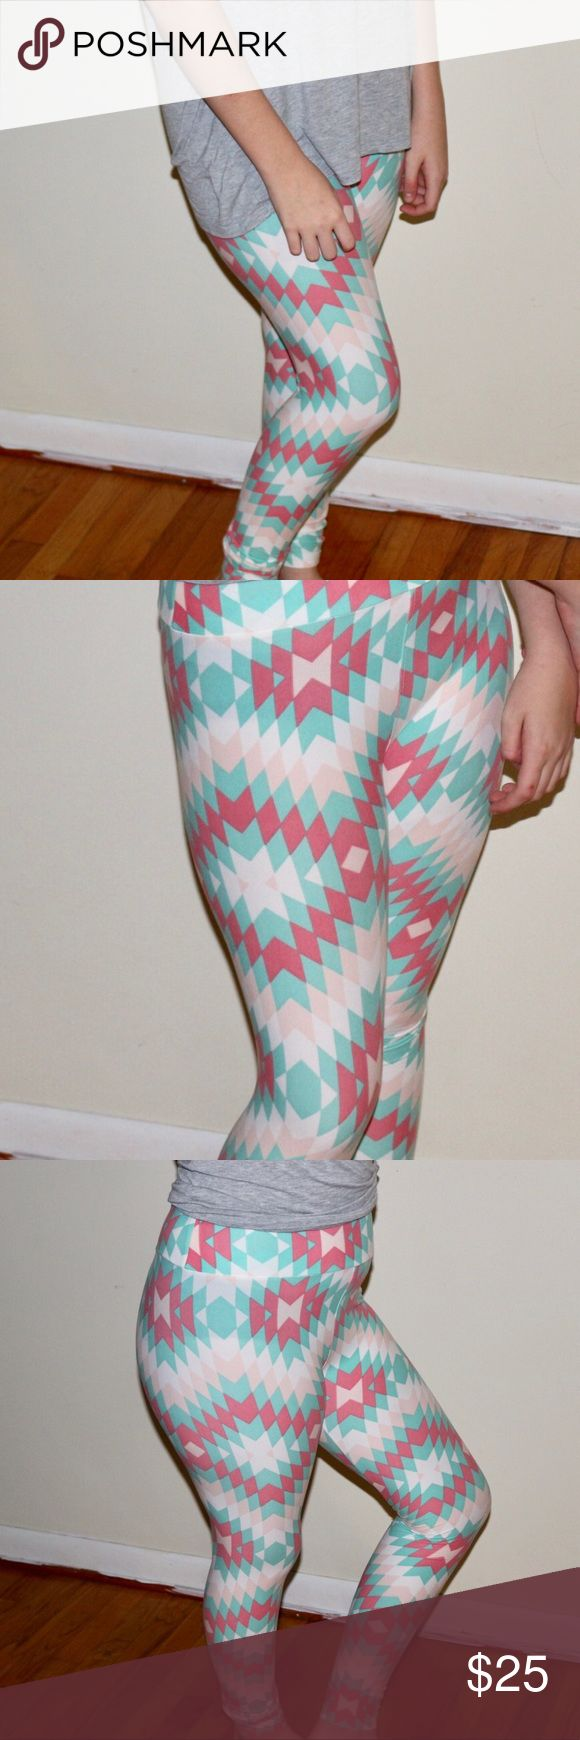 LuLa Roe leggings One size Lula roe leggings LuLaRoe Pants Leggings